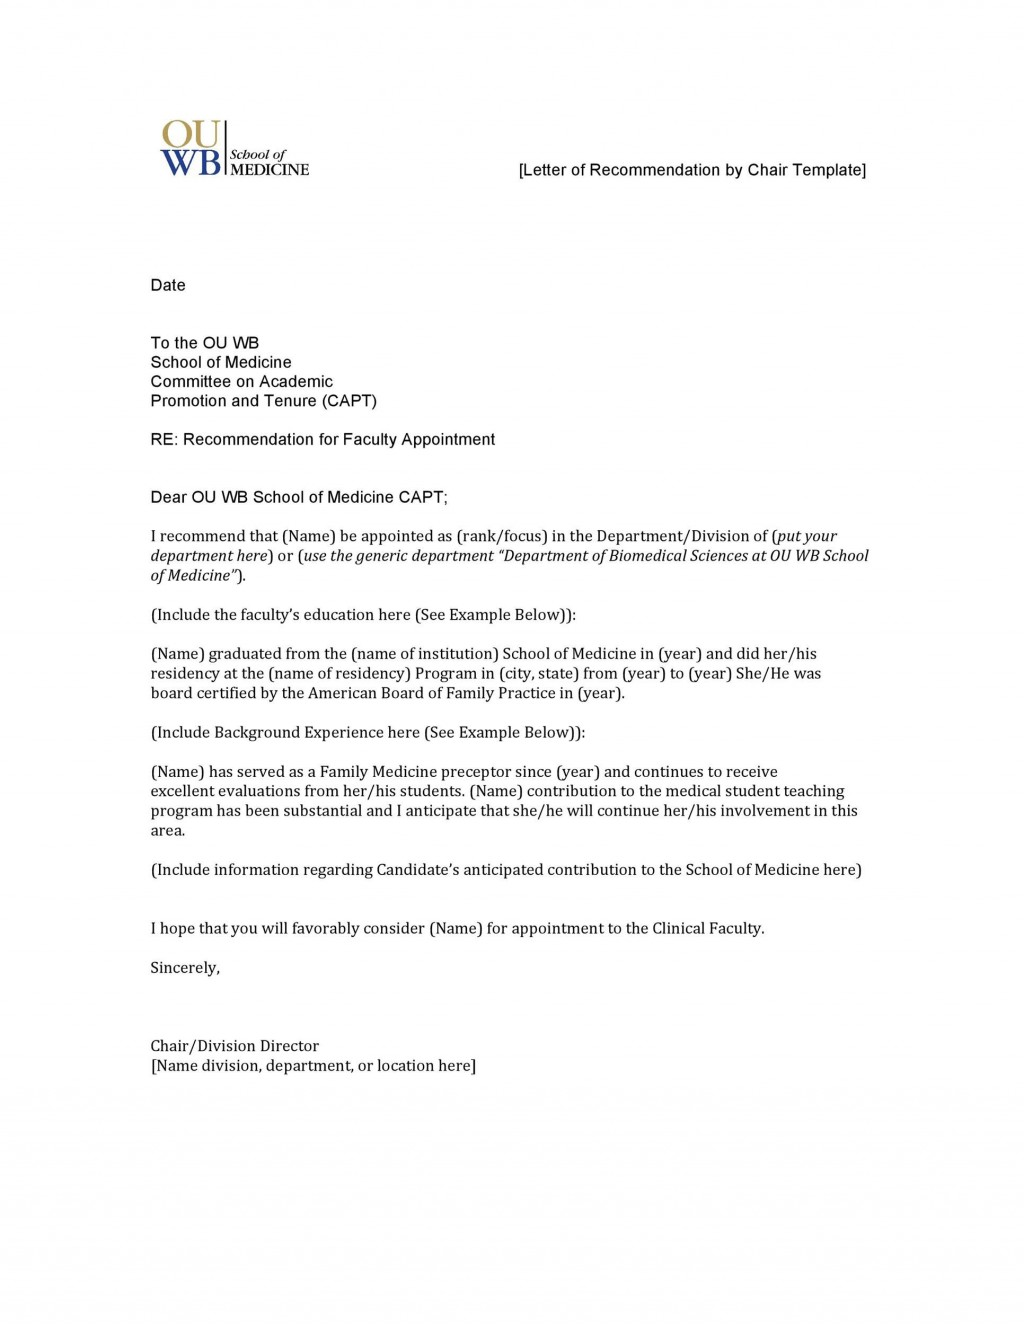 006 Imposing Letter Of Recomendation Template Photo  Reference For Employment Sample Recommendation Teacher Student From EmployerLarge